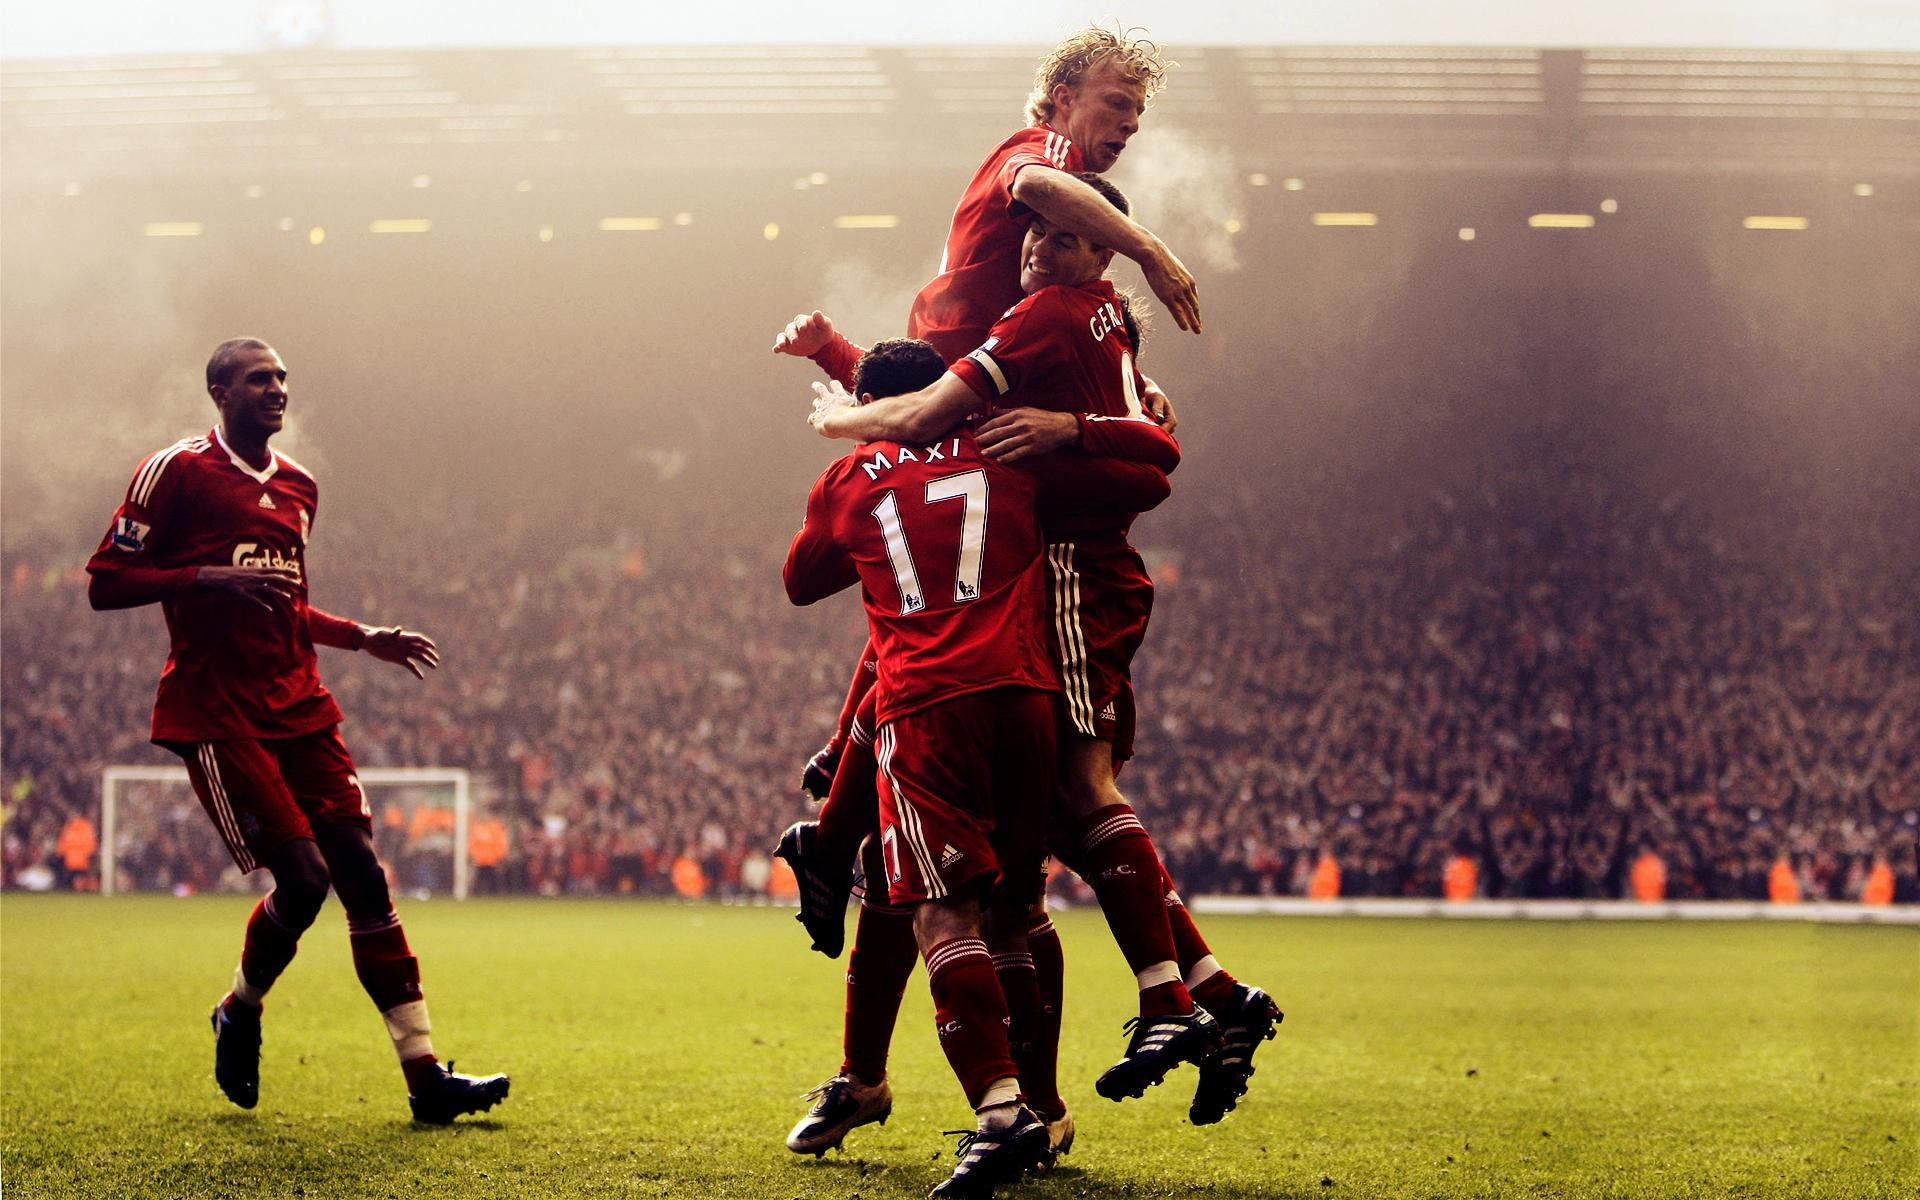 wallpaper.wiki-Cool-Soccer-HD-Picture-PIC-WPD008228